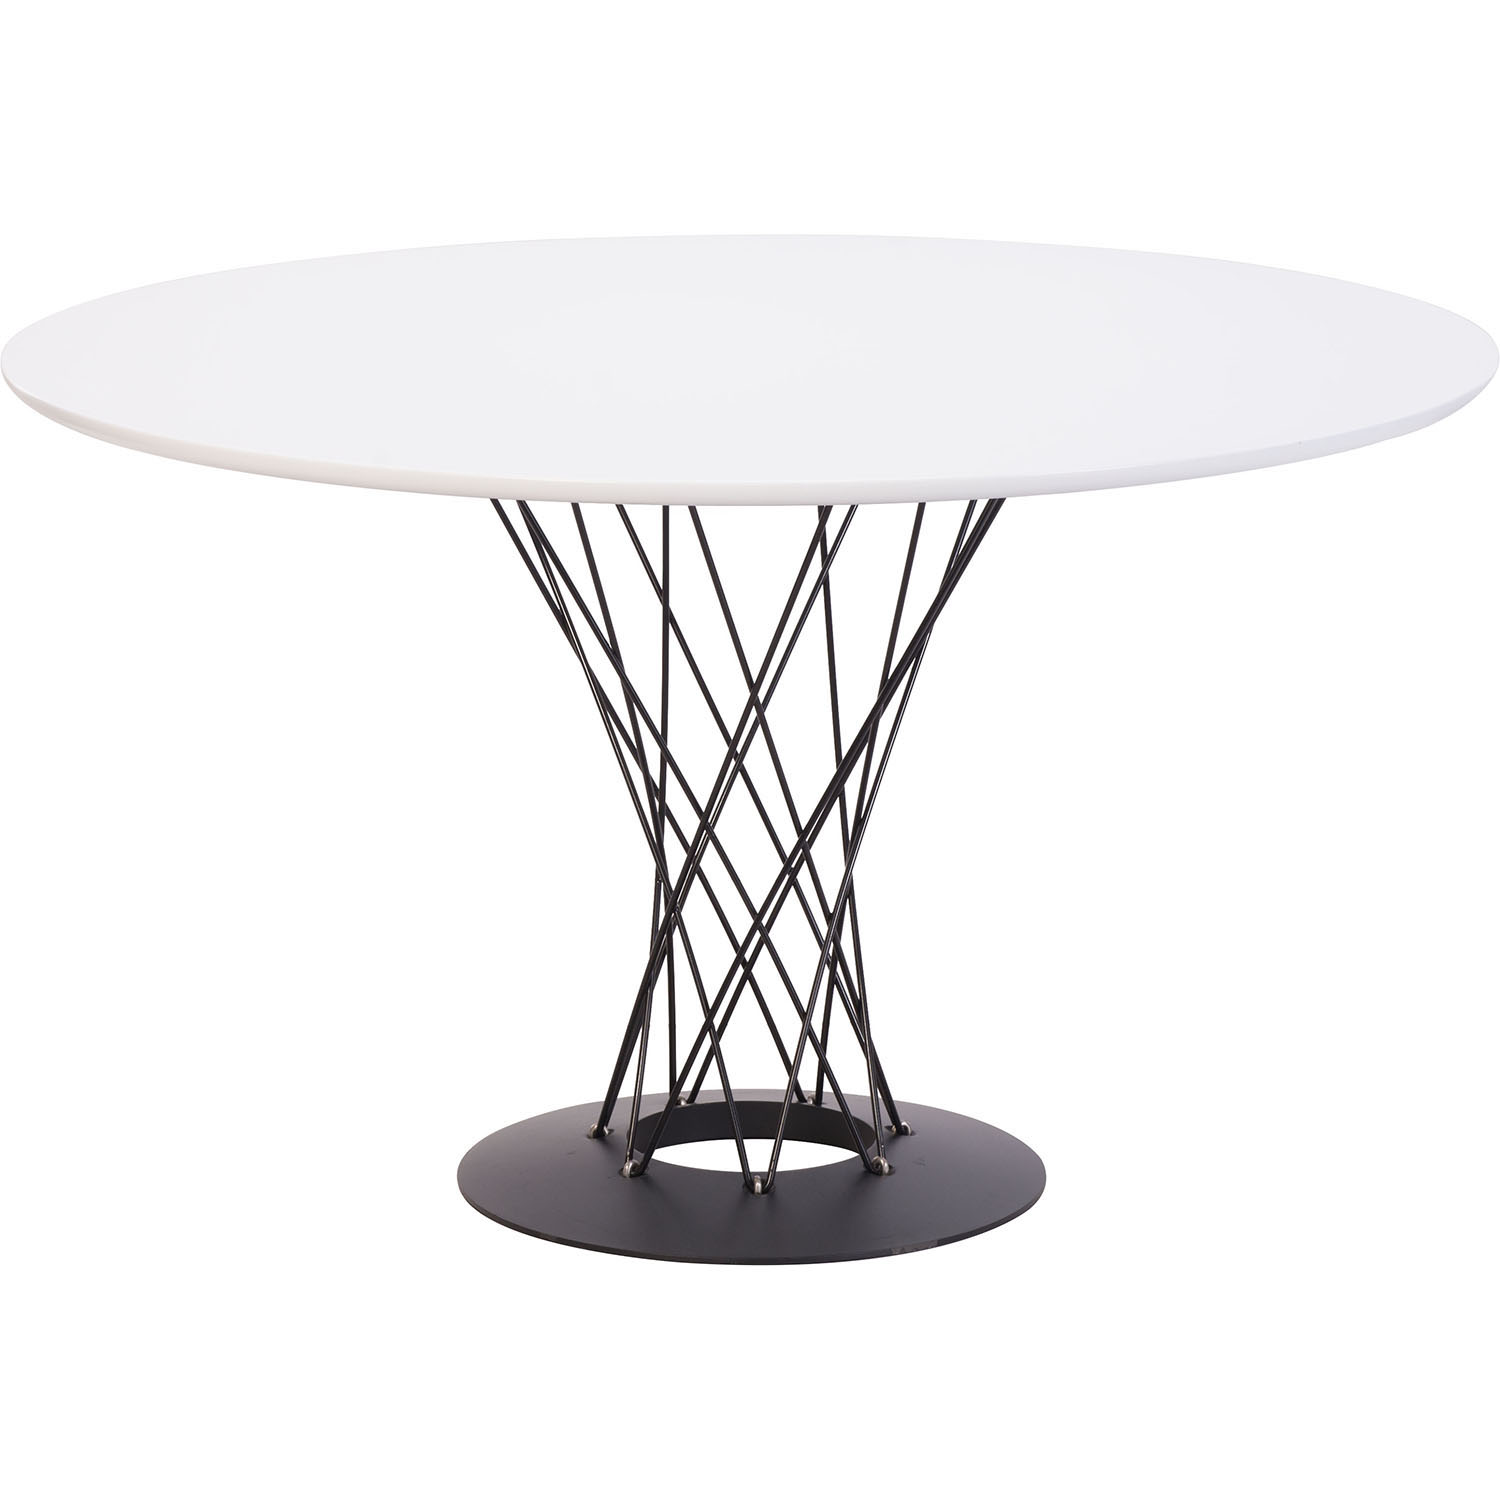 Excellent Modern Spiral Dining Table  14 1781